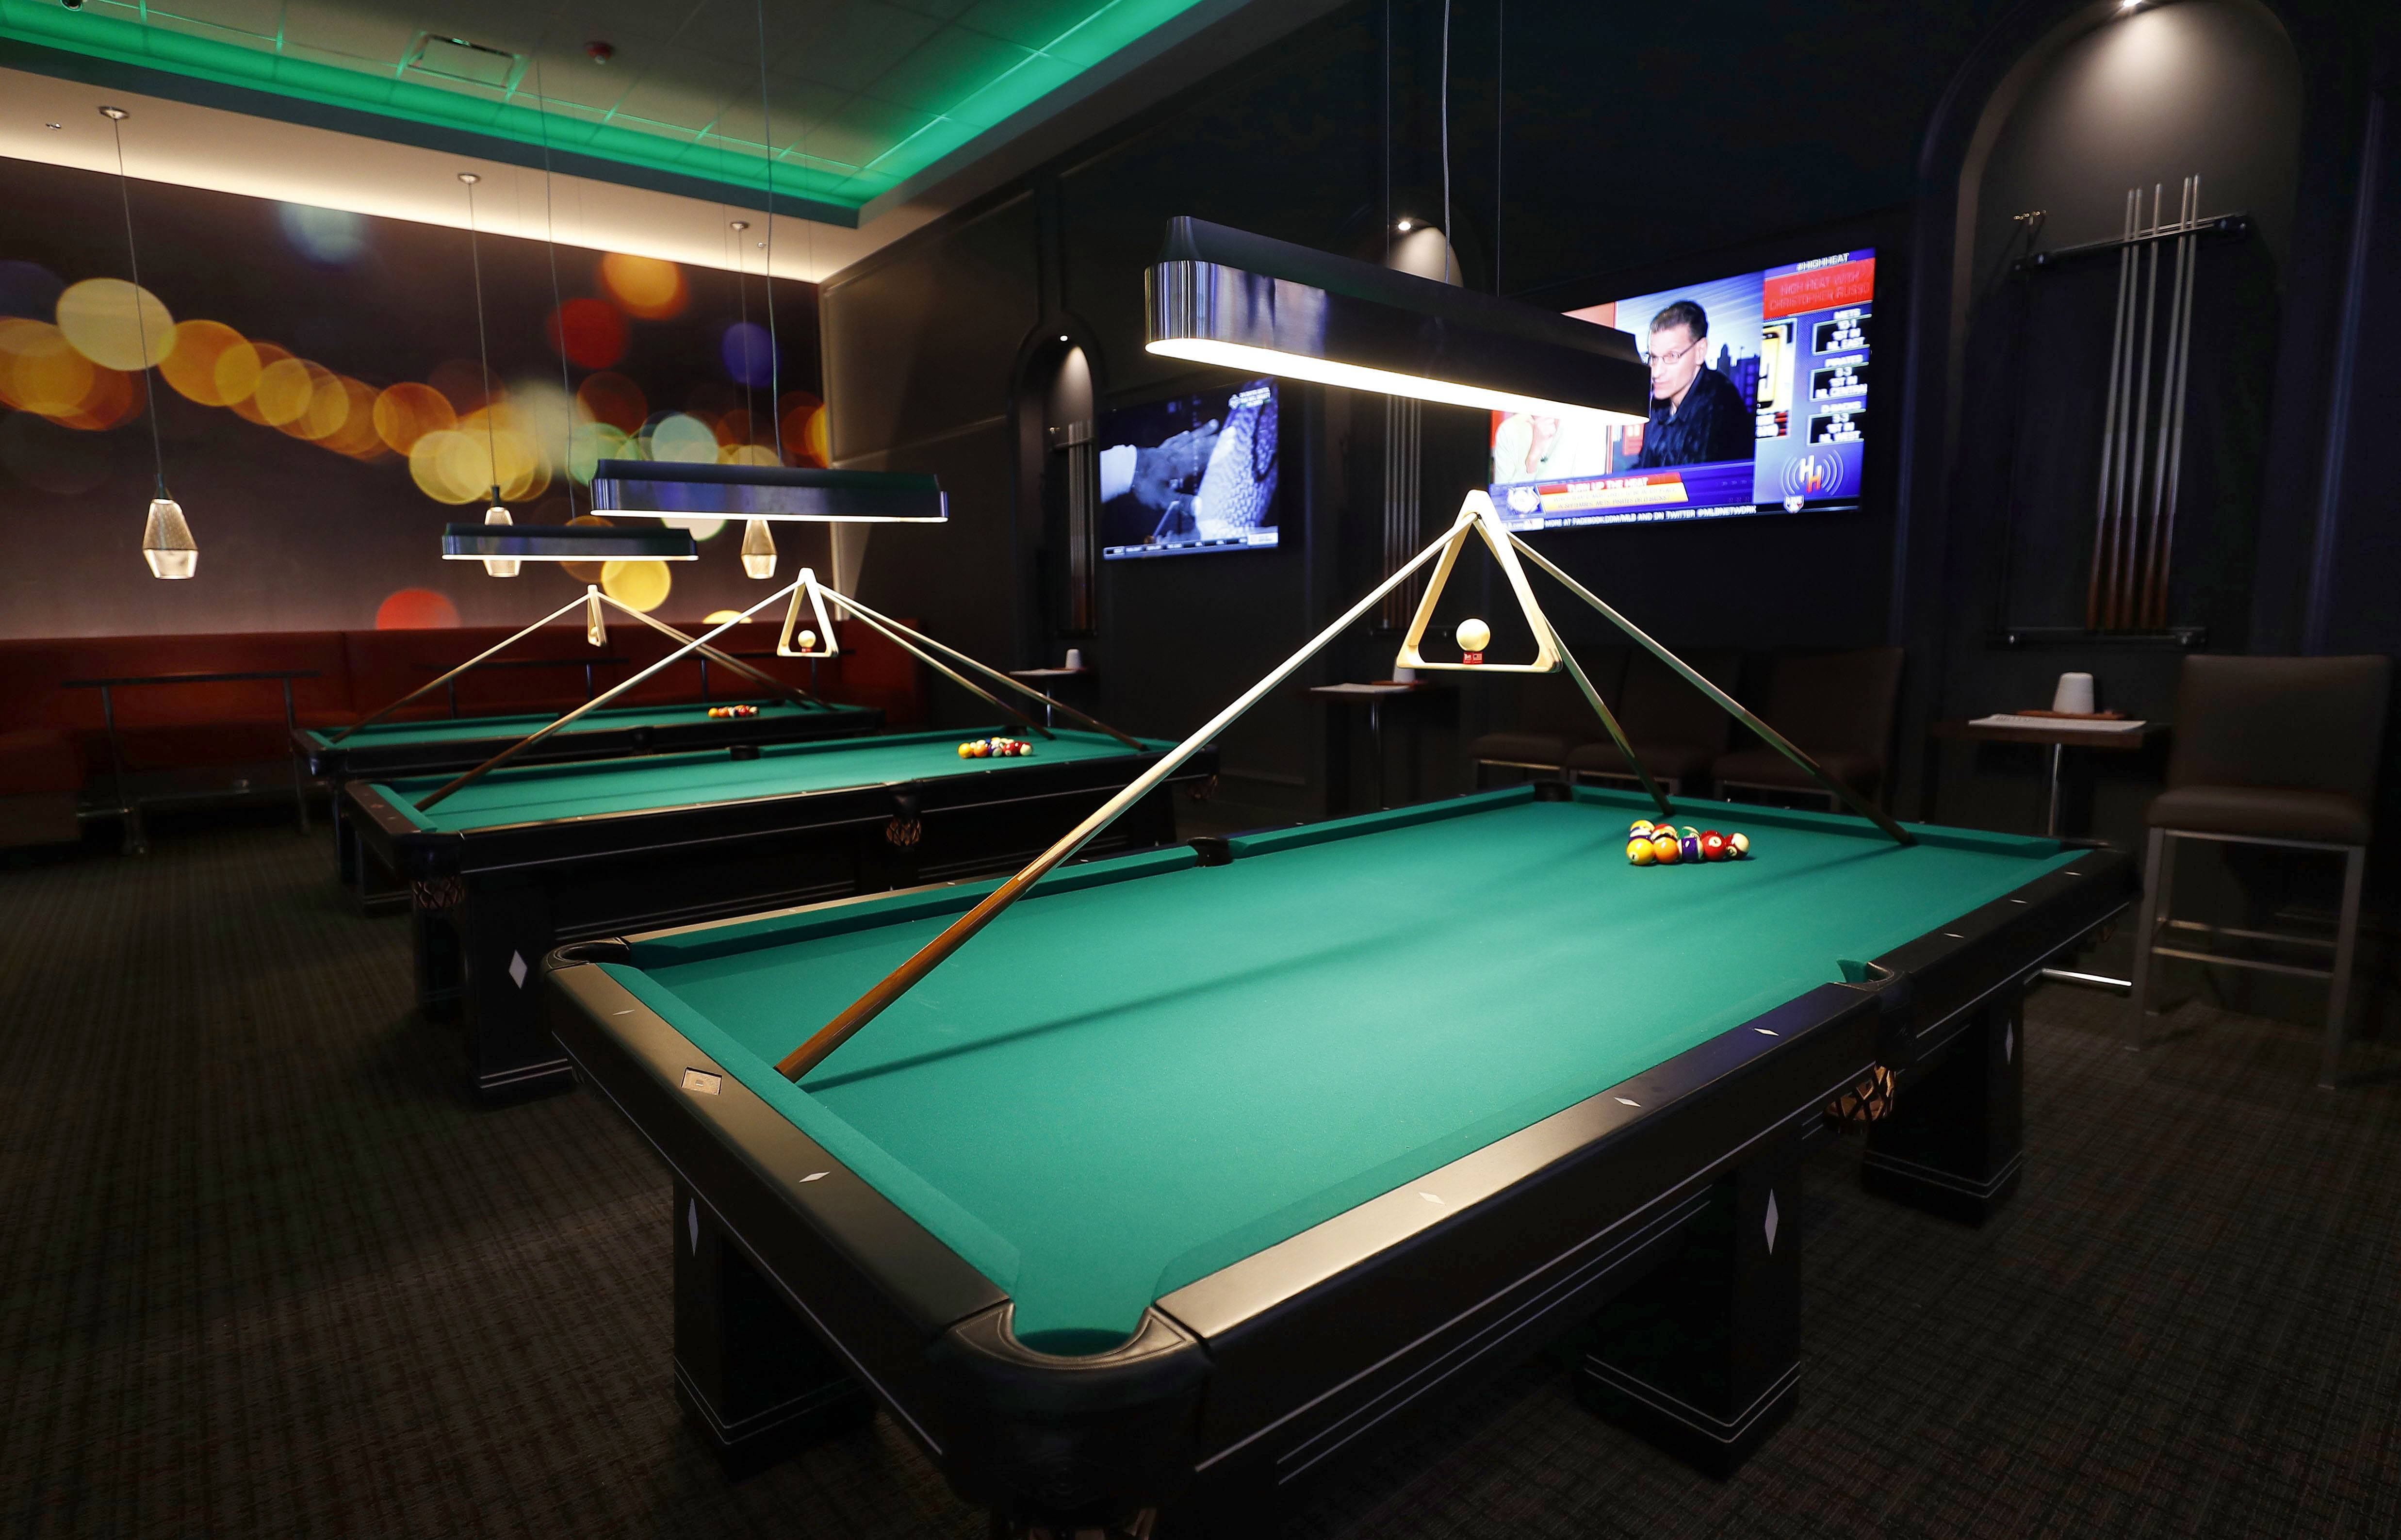 The billiards room at the new Dave & Buster's in Rosemont has three pool tables -- uniquely designed for the Dallas-based chain.